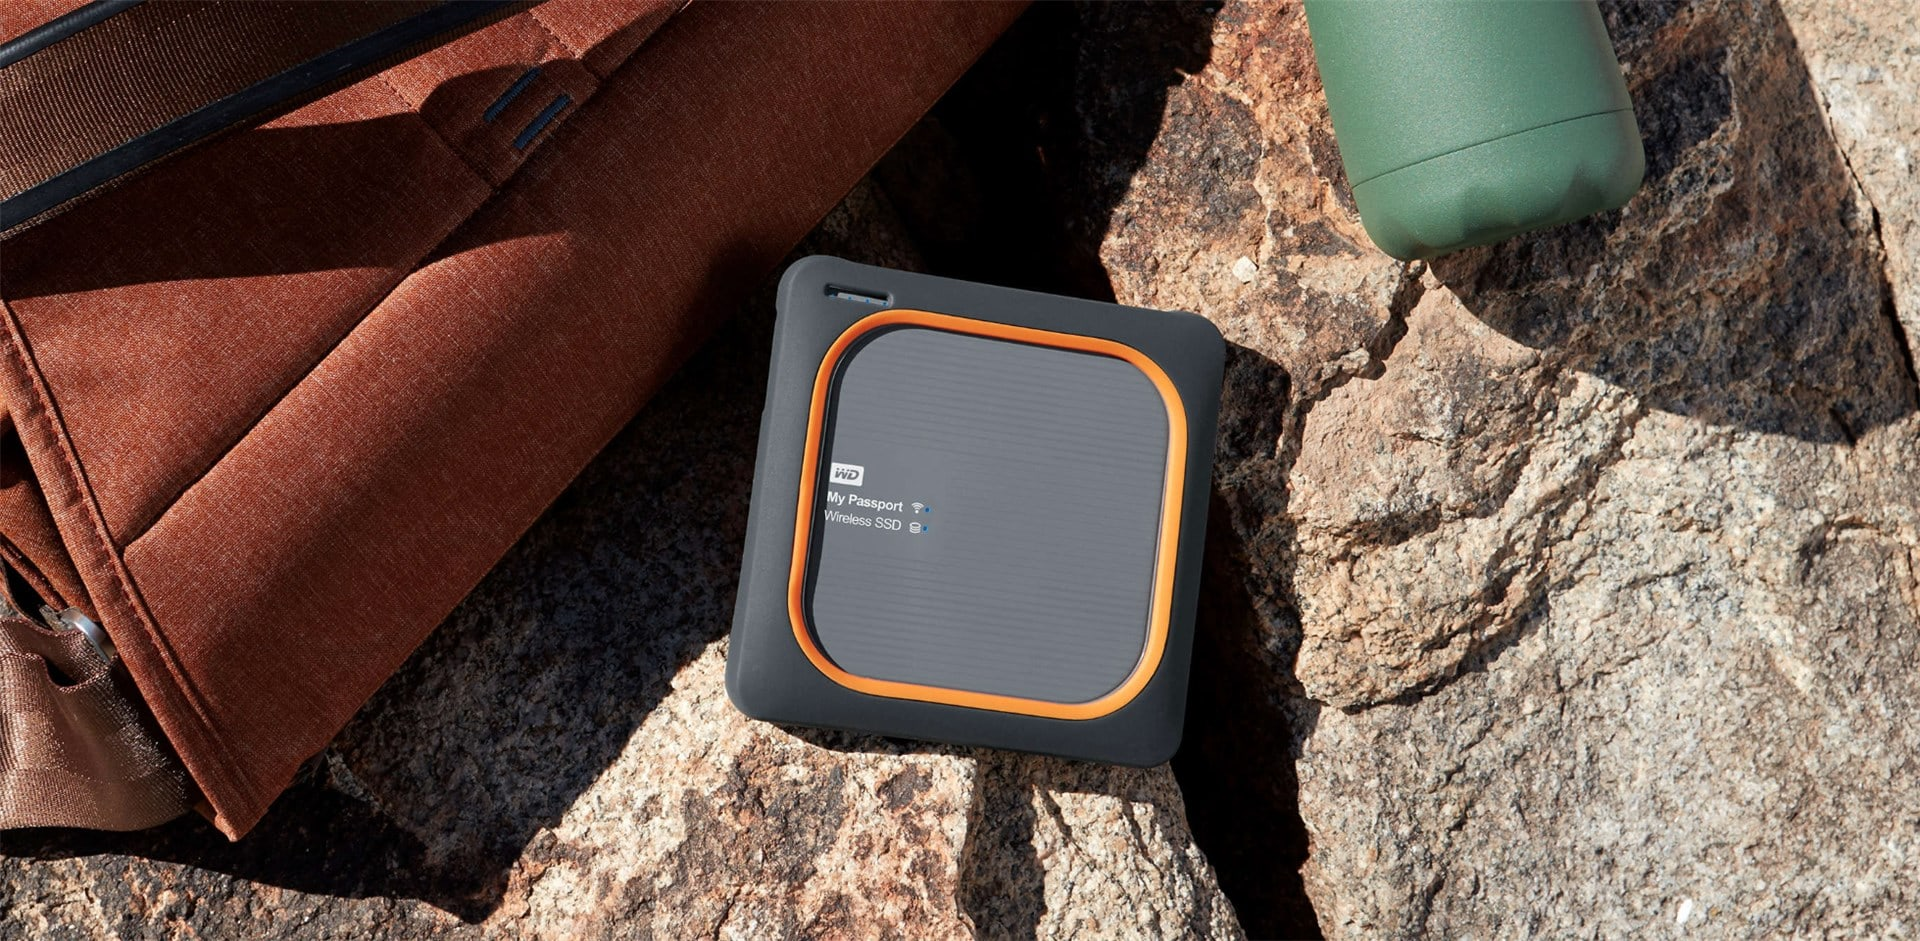 The best gadget for photographers and videographers? WD My Passport Wireless SSD Review